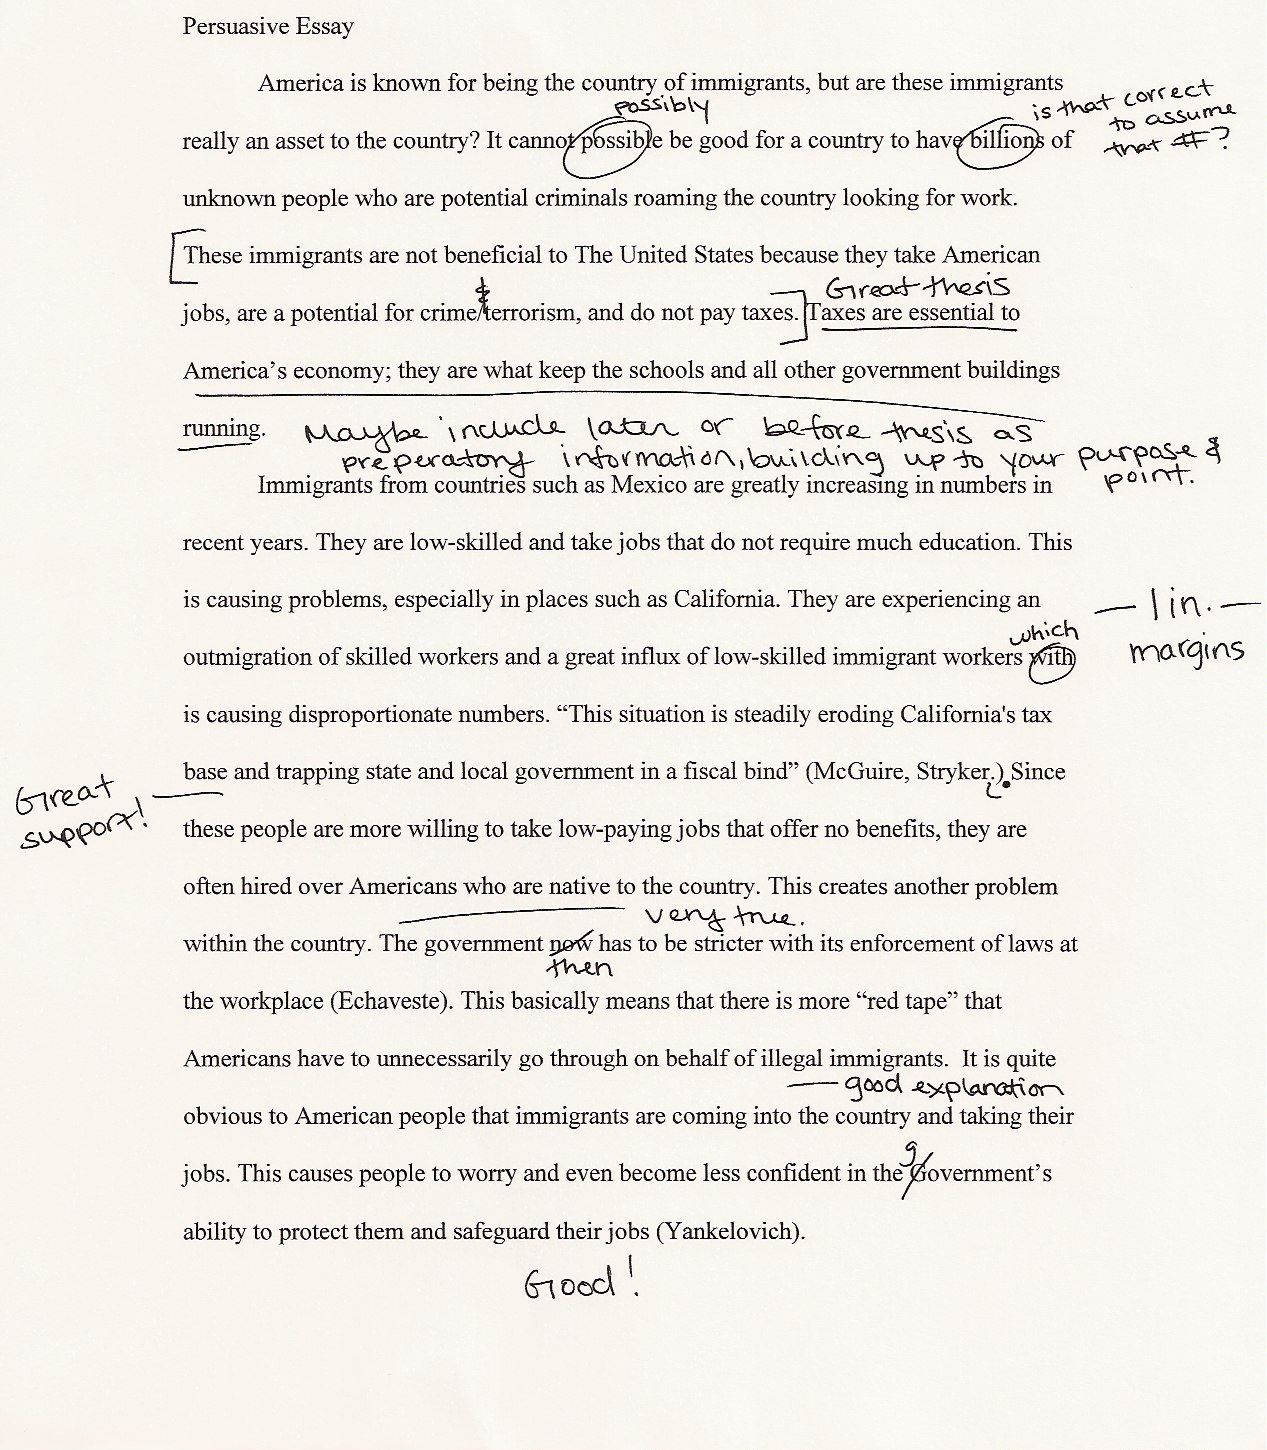 024 Argumentative Research Paper Vs Expository Essays Awful Full